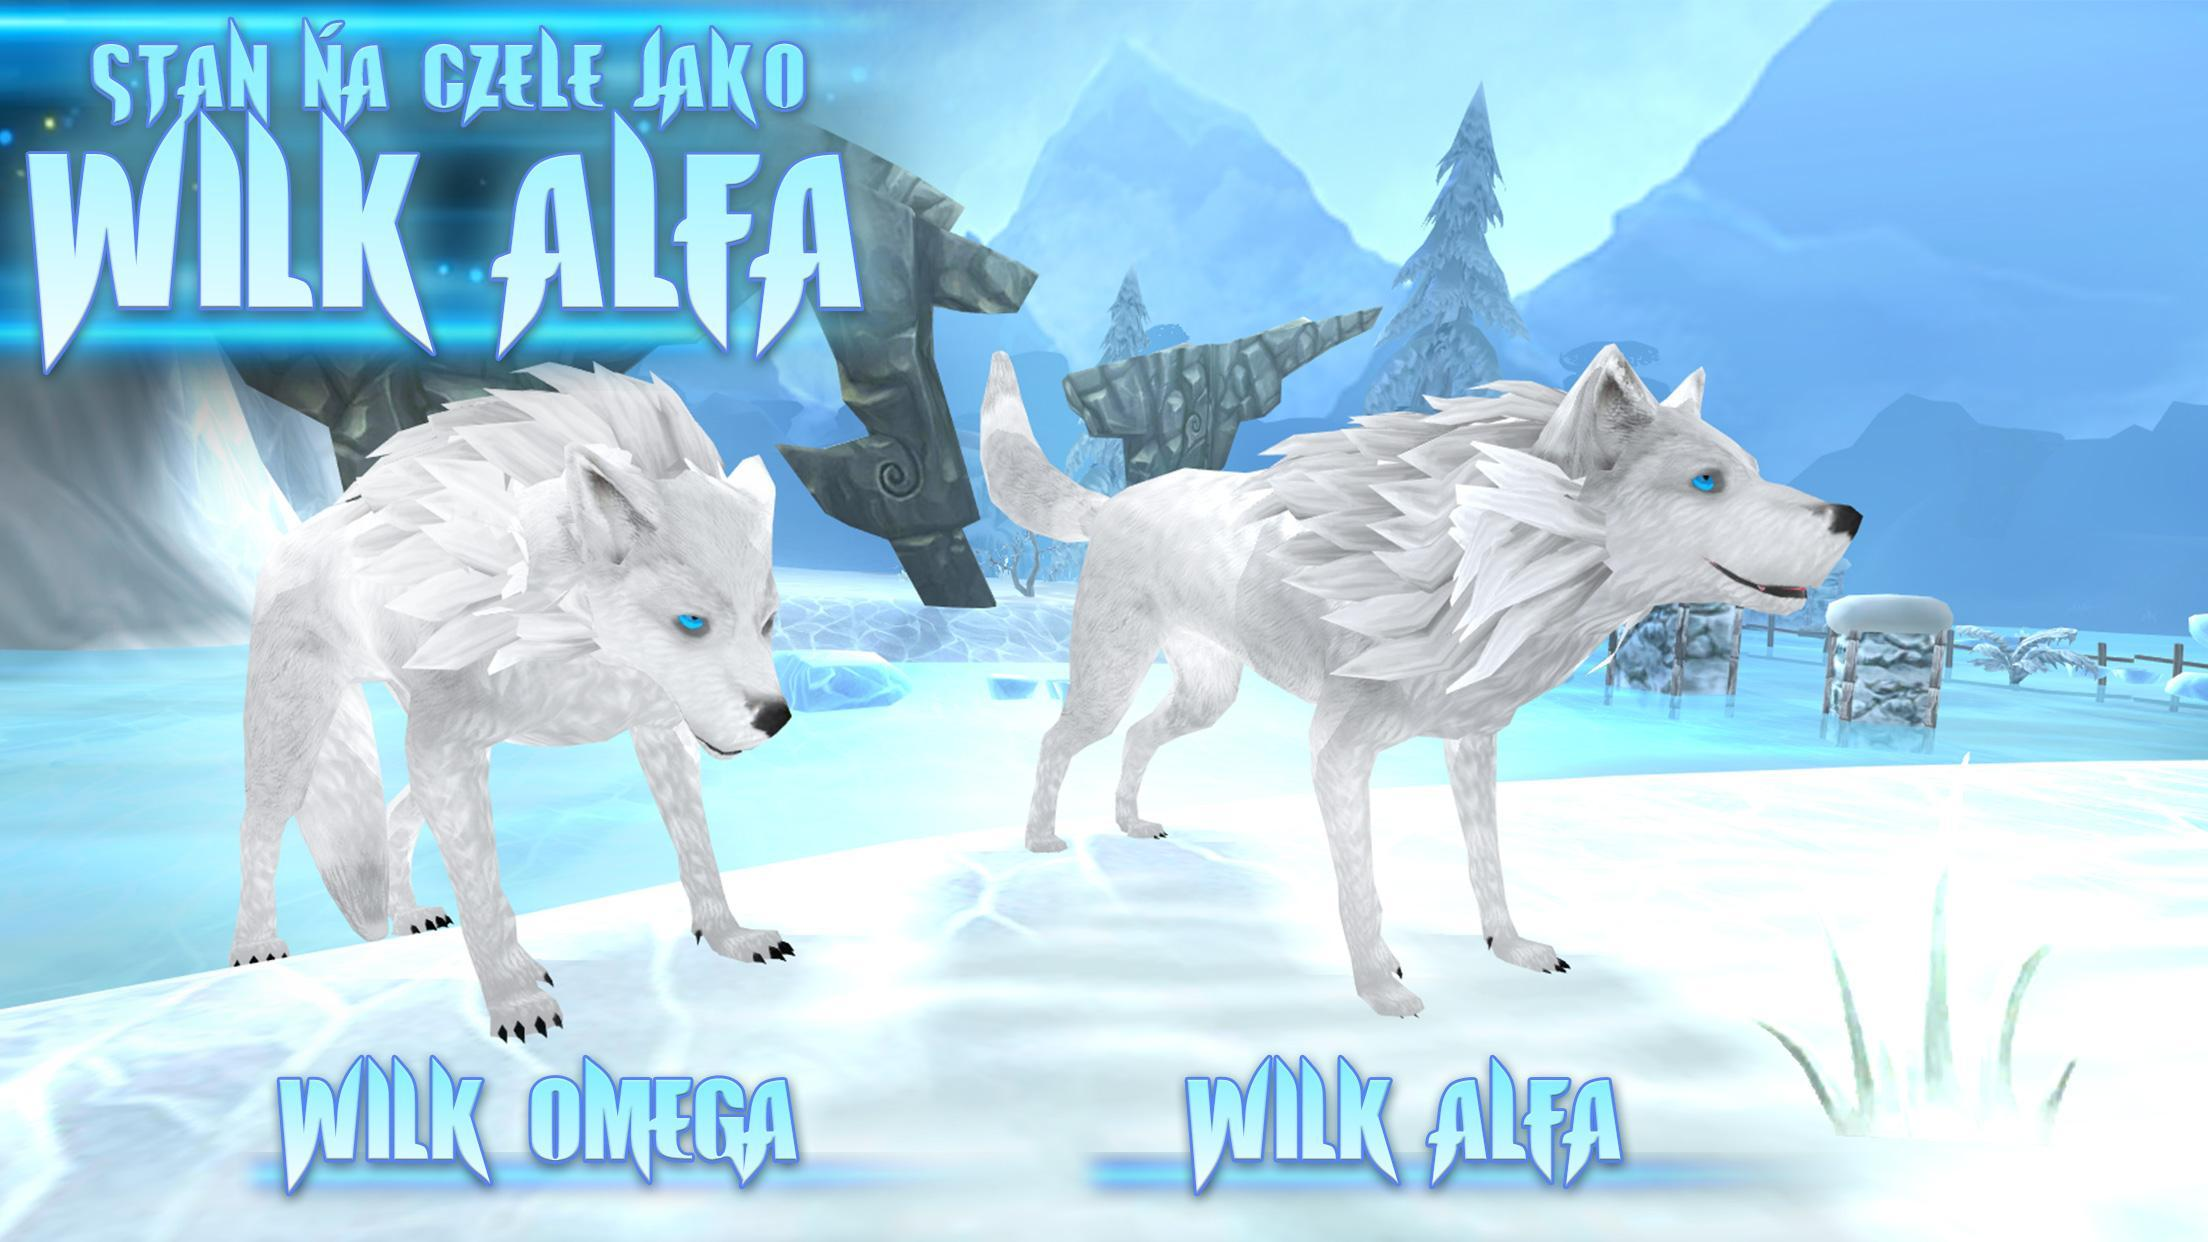 Wolf: The Evolution - RPG online for Android - APK Download